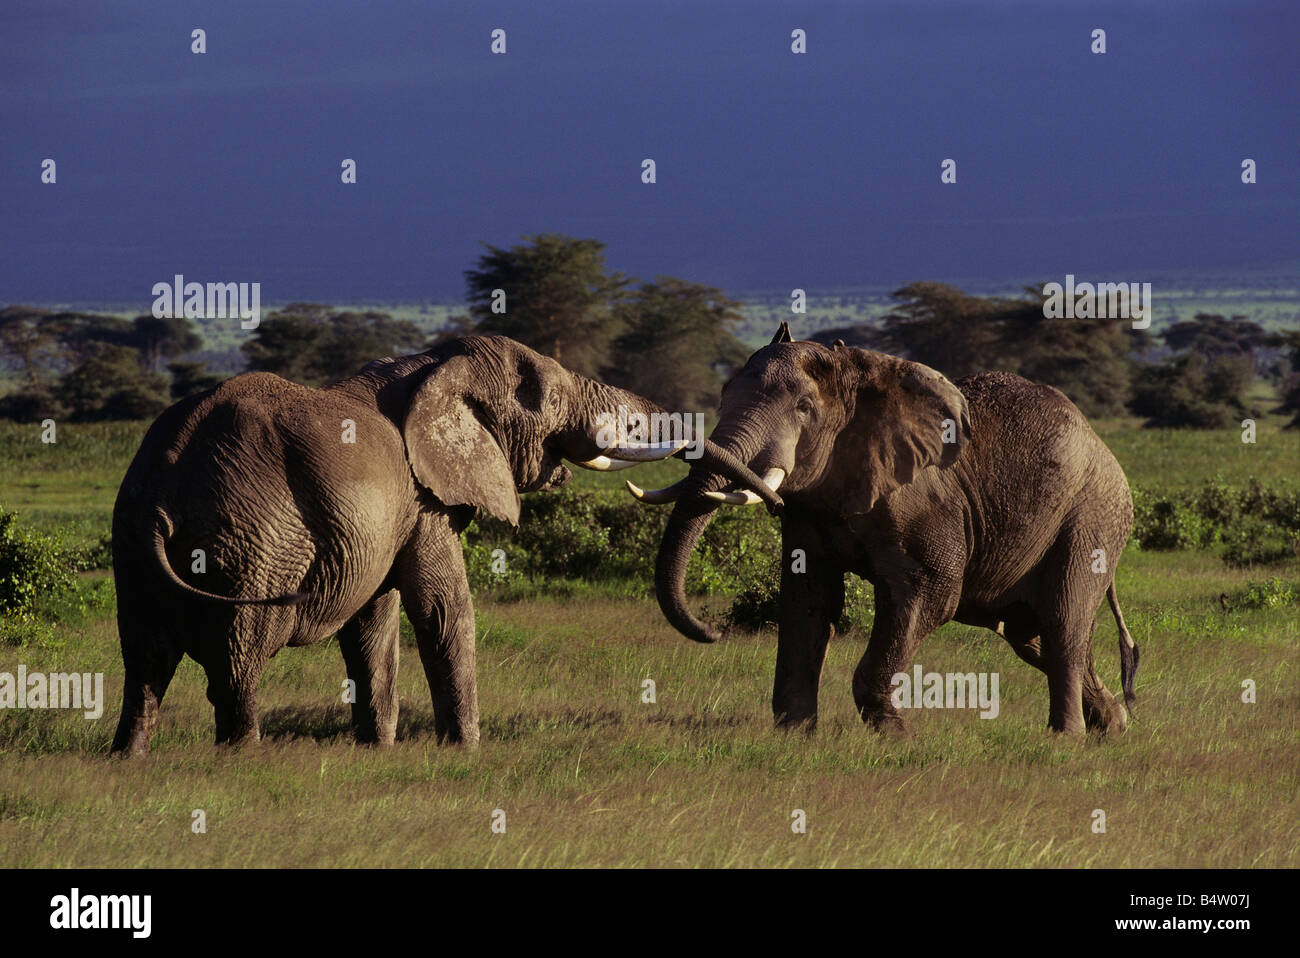 big elephant fight stock photo, royalty free image: 20218006 - alamy